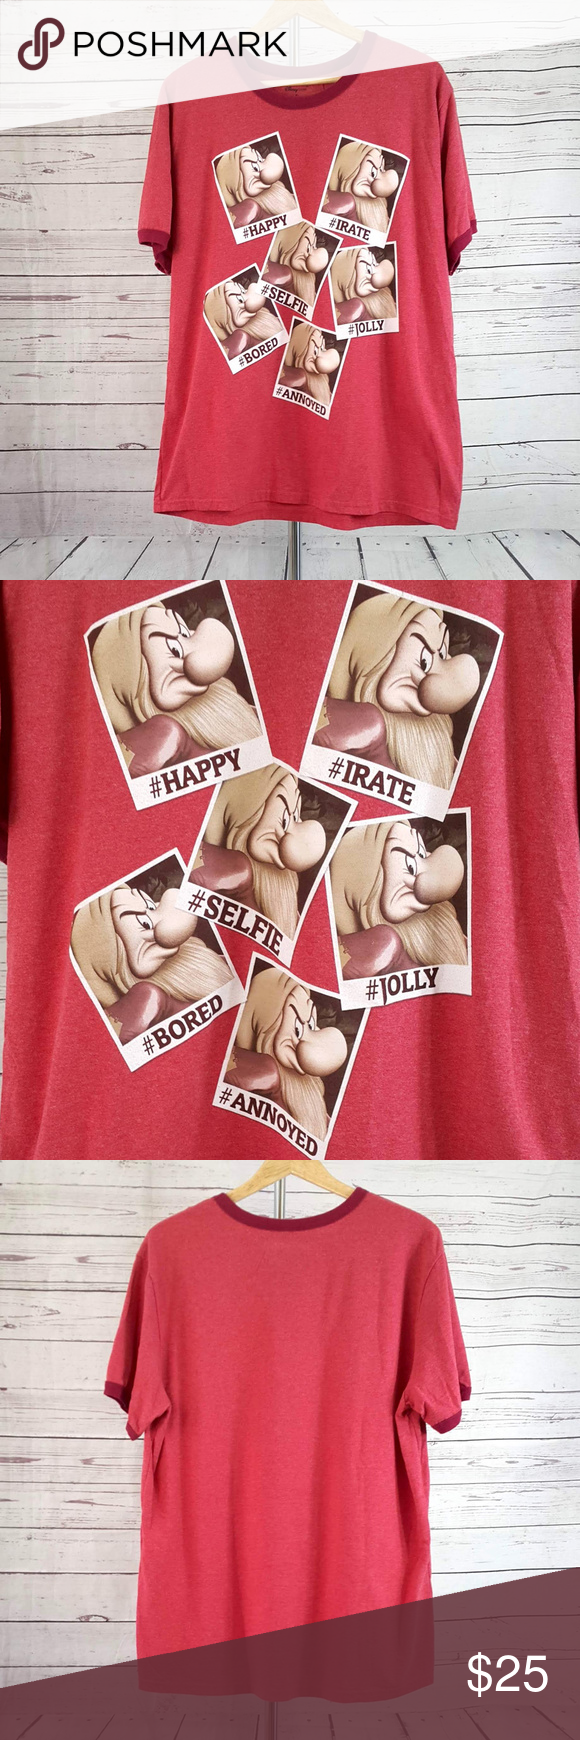 Disney Store red hashtag selfie Grumpy t shirt Disney Store heather red hashtag selfie photos Grumpy short sleeve t shirt. Crew neck. Darker red trim at neck and sleeves. Excellent pre-owned condition with no stains or tears. #happy #irate #selfie #jolly #bored #annoyed  Size XL / Extra Large  Measurements are approximate and taken laying flat: armpit to armpit: 24